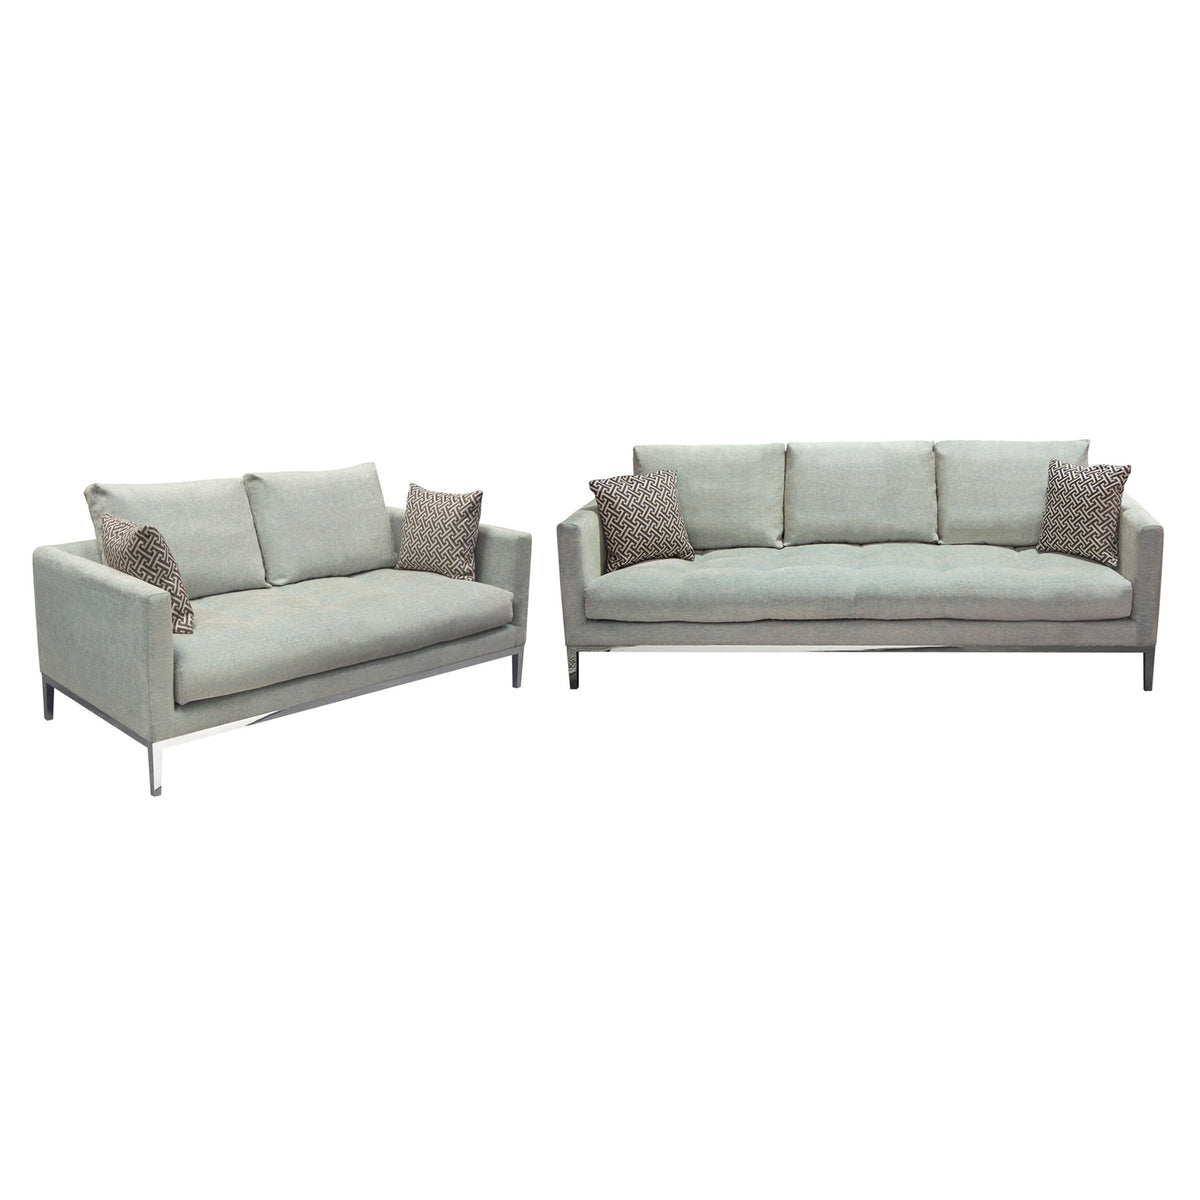 Loose Pillow Back Sofa: Chateau Loose Pillow Back Sofa And Loveseat 2PC Set In